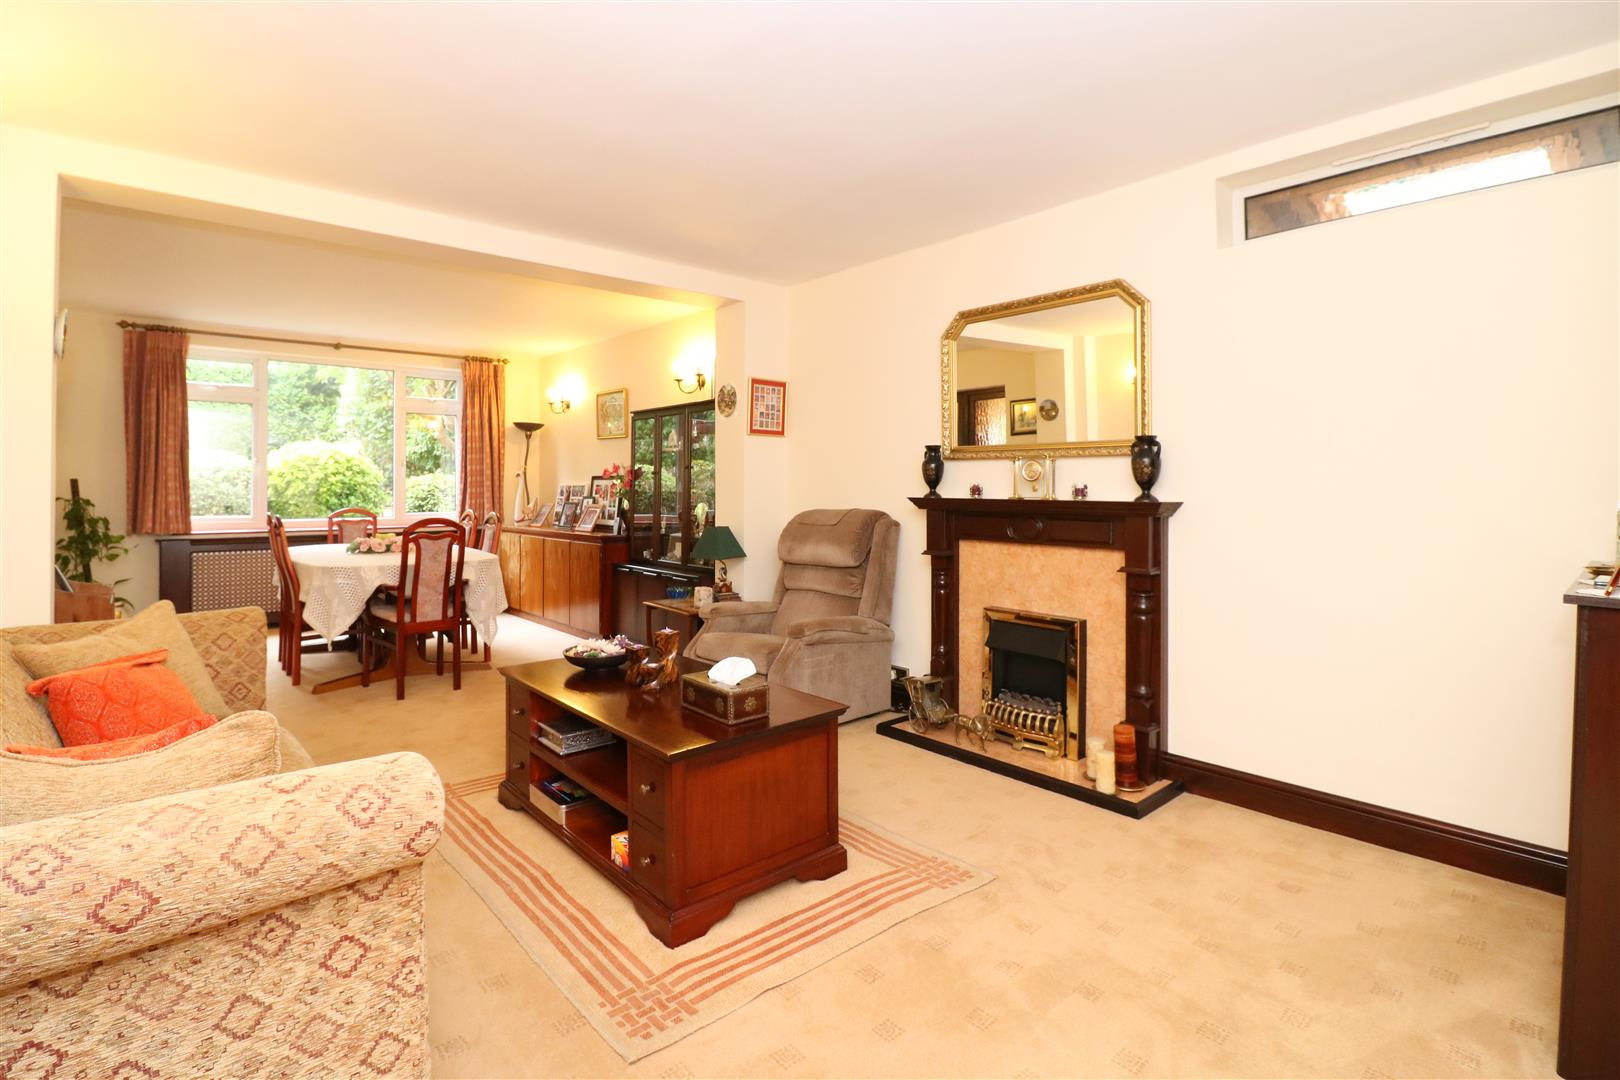 4 bed House for sale in Links Drive, Radlett - (Property Image 2)